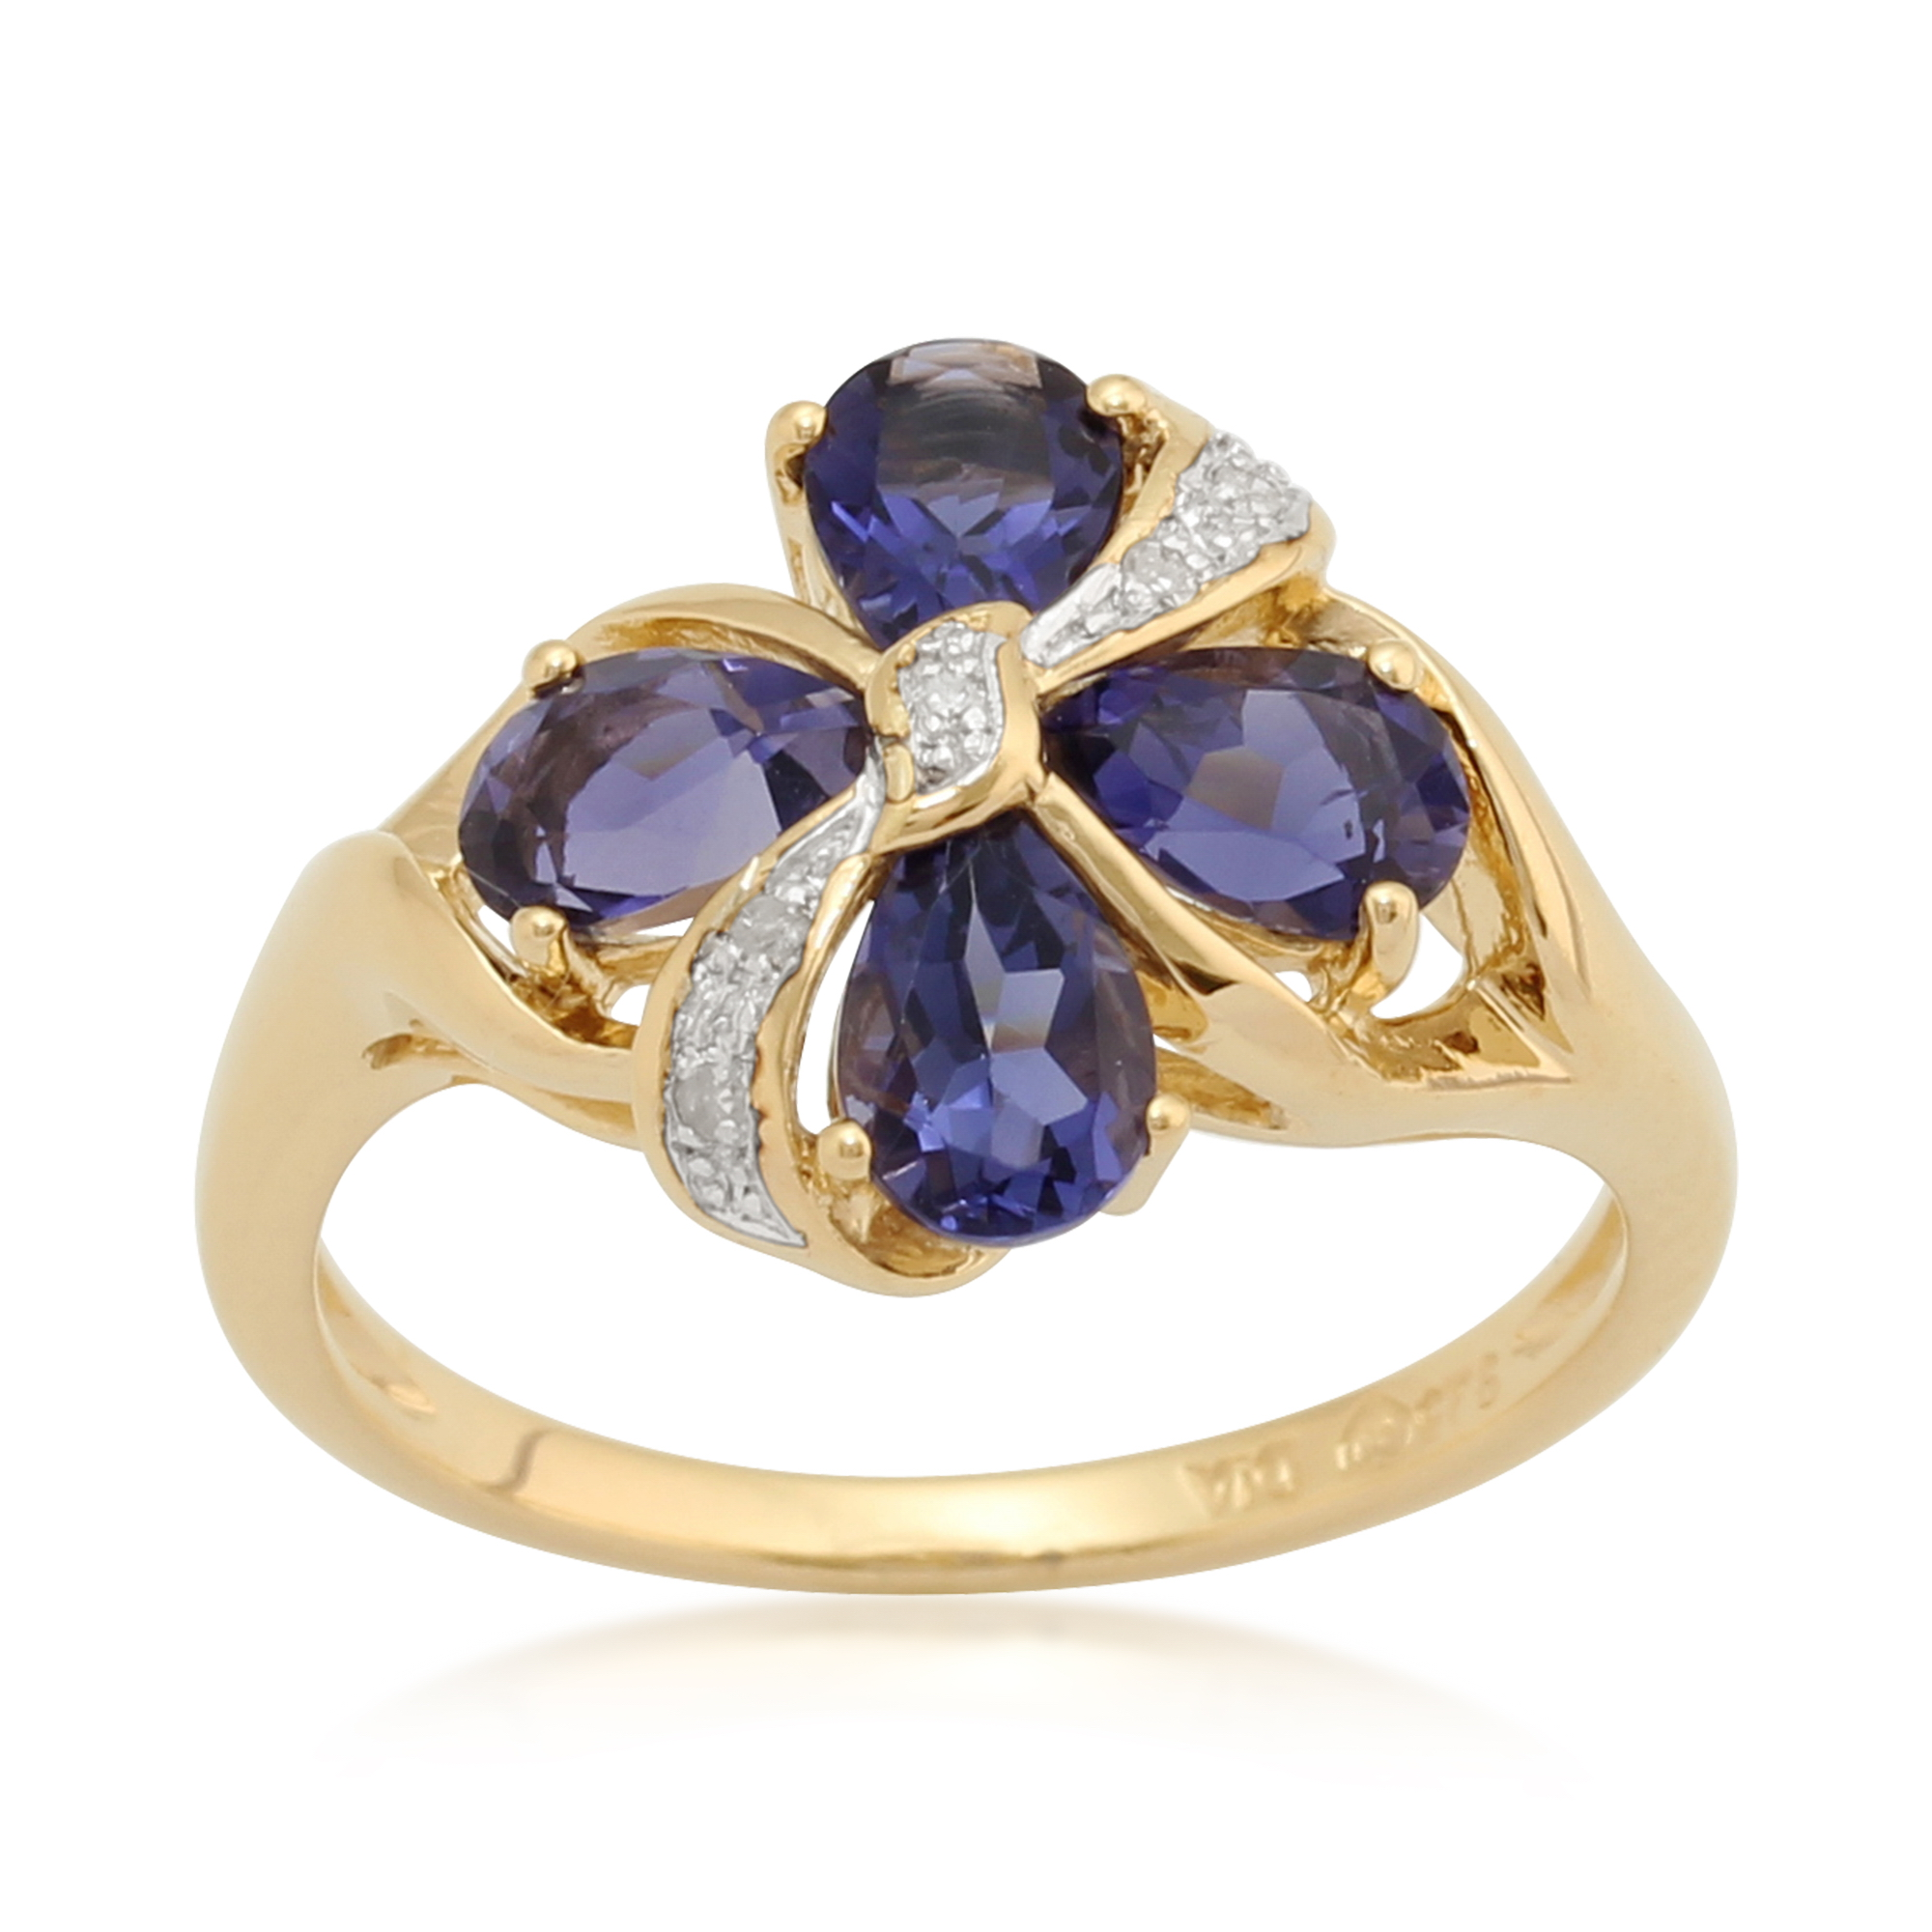 Gemondo Gold Plated Sterling Silver 1.16ct Iolite & 2.2pt Diamond Bow Ring